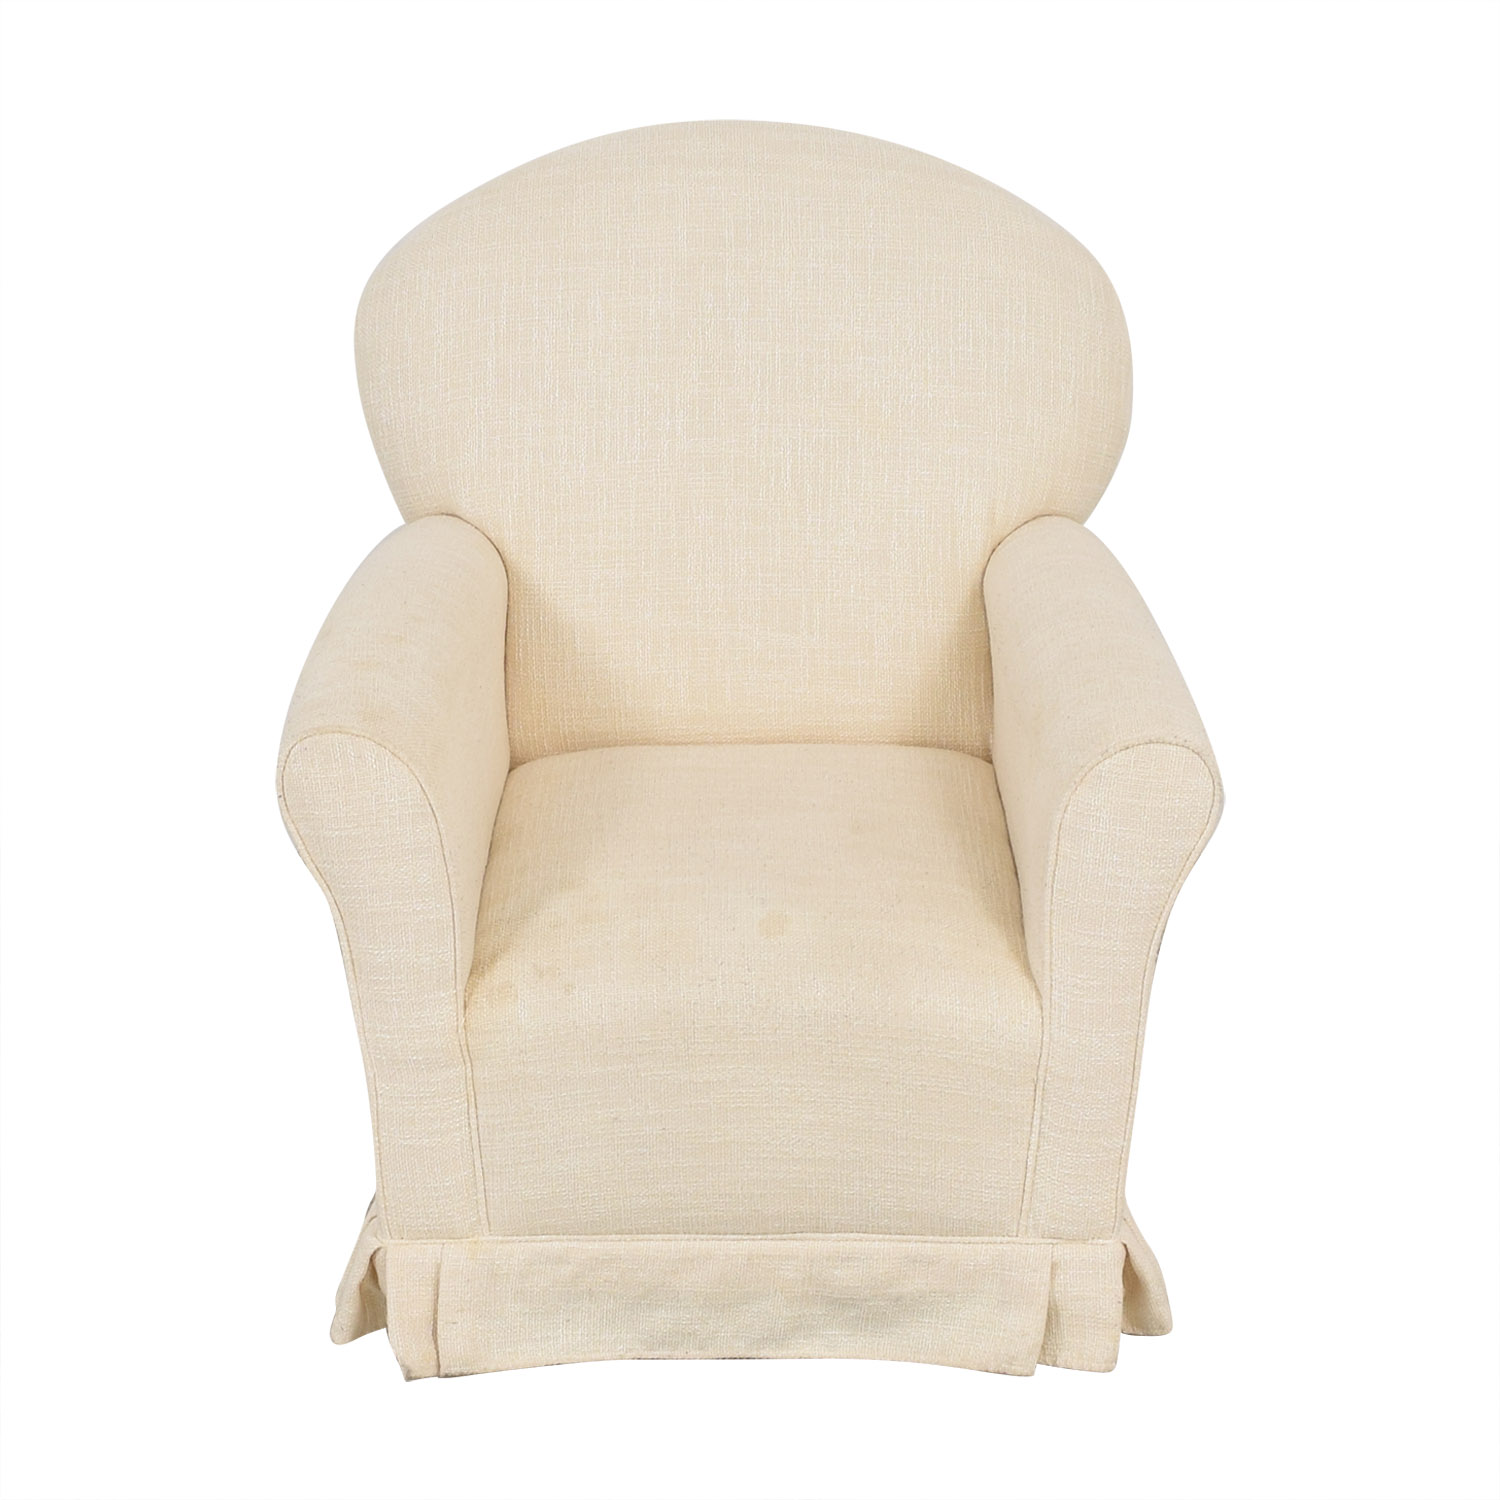 buy Little Castle Furniture Glider Chair and Ottoman Little Castle Furniture